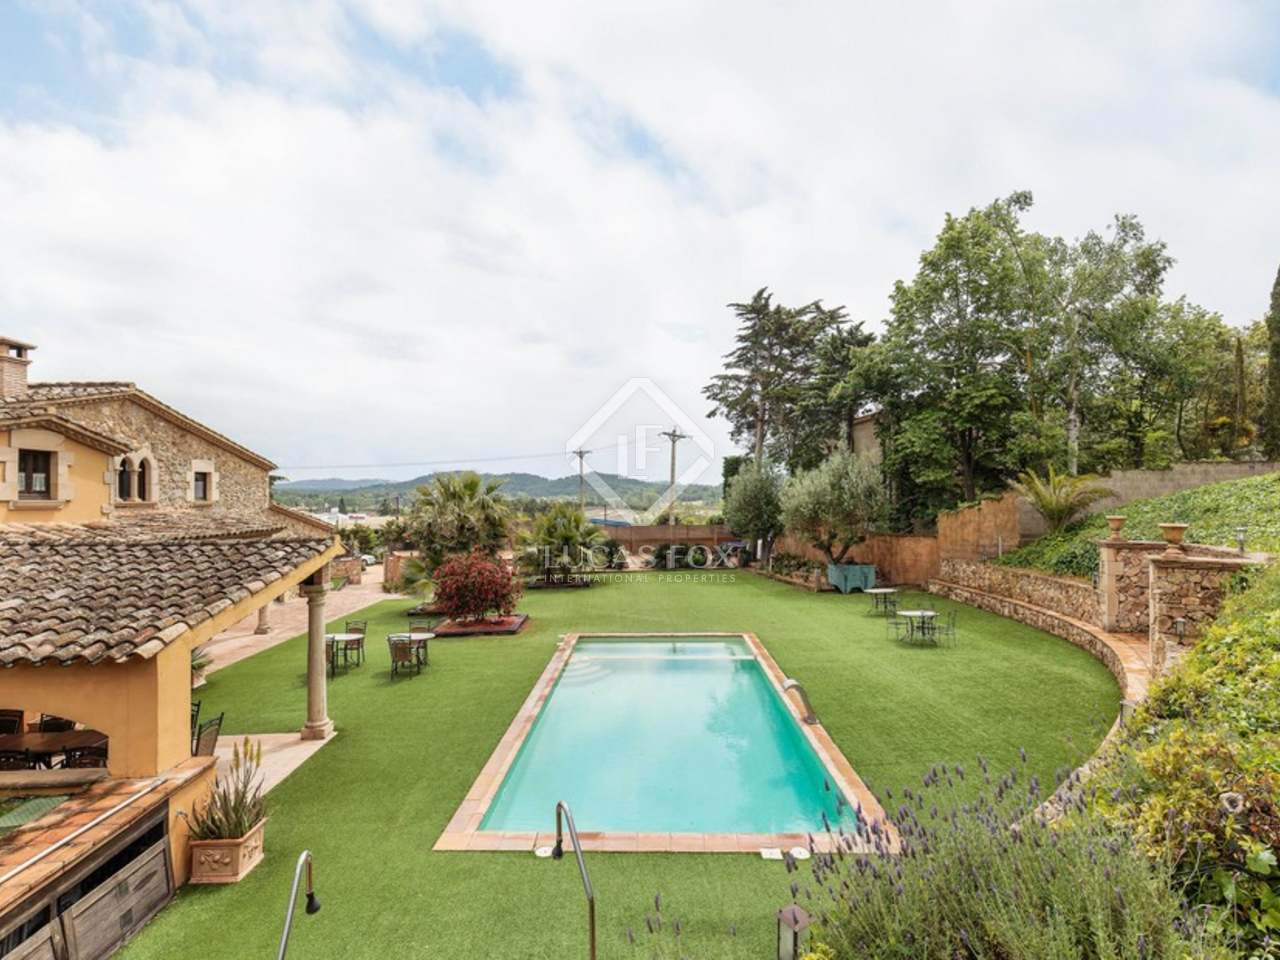 8 bedroom country house for sale in baix empord girona for 8 bedroom house for sale